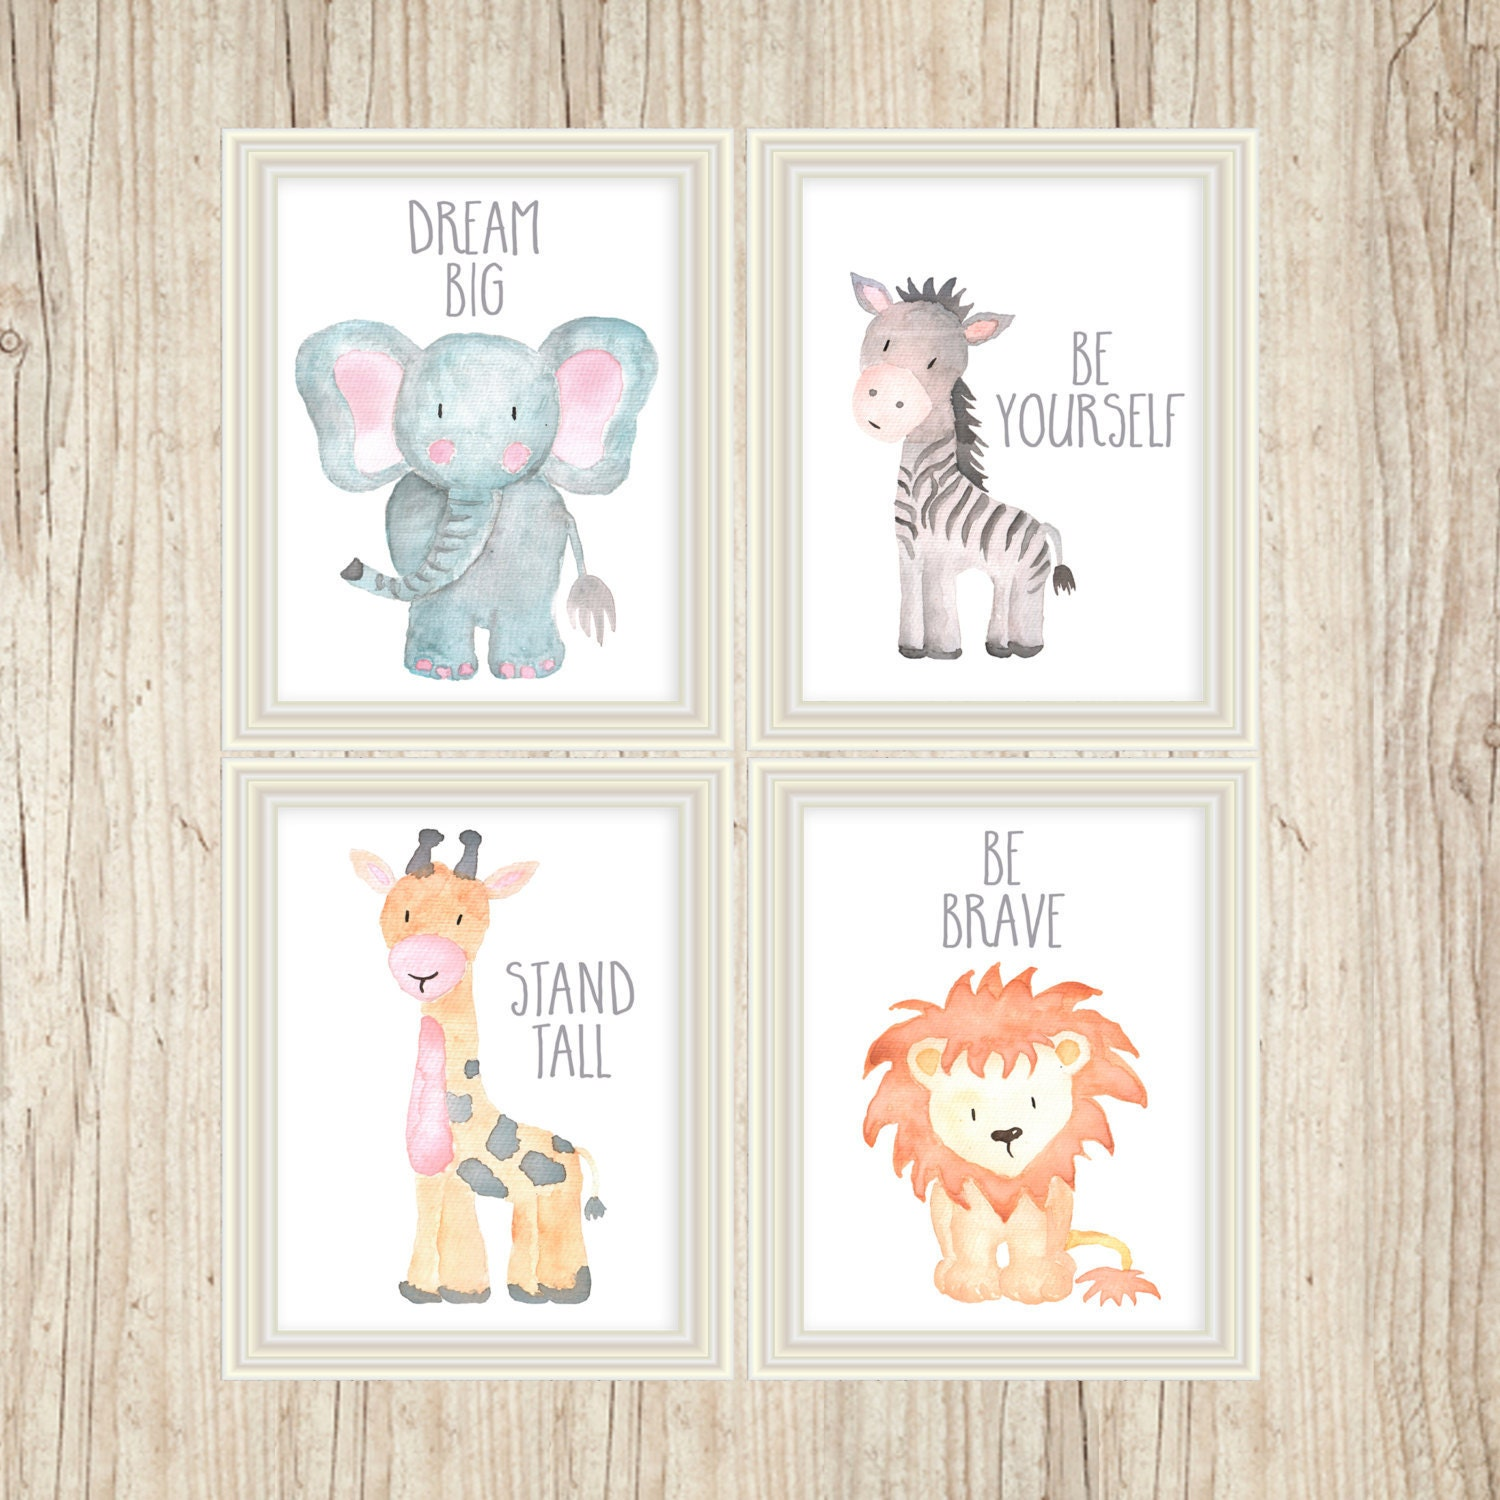 Safari Nursery Decor Jungle Theme Nursery Nursery Artwork: Safari Nursery Decor Safari Nursery Wall Art Nursery Print